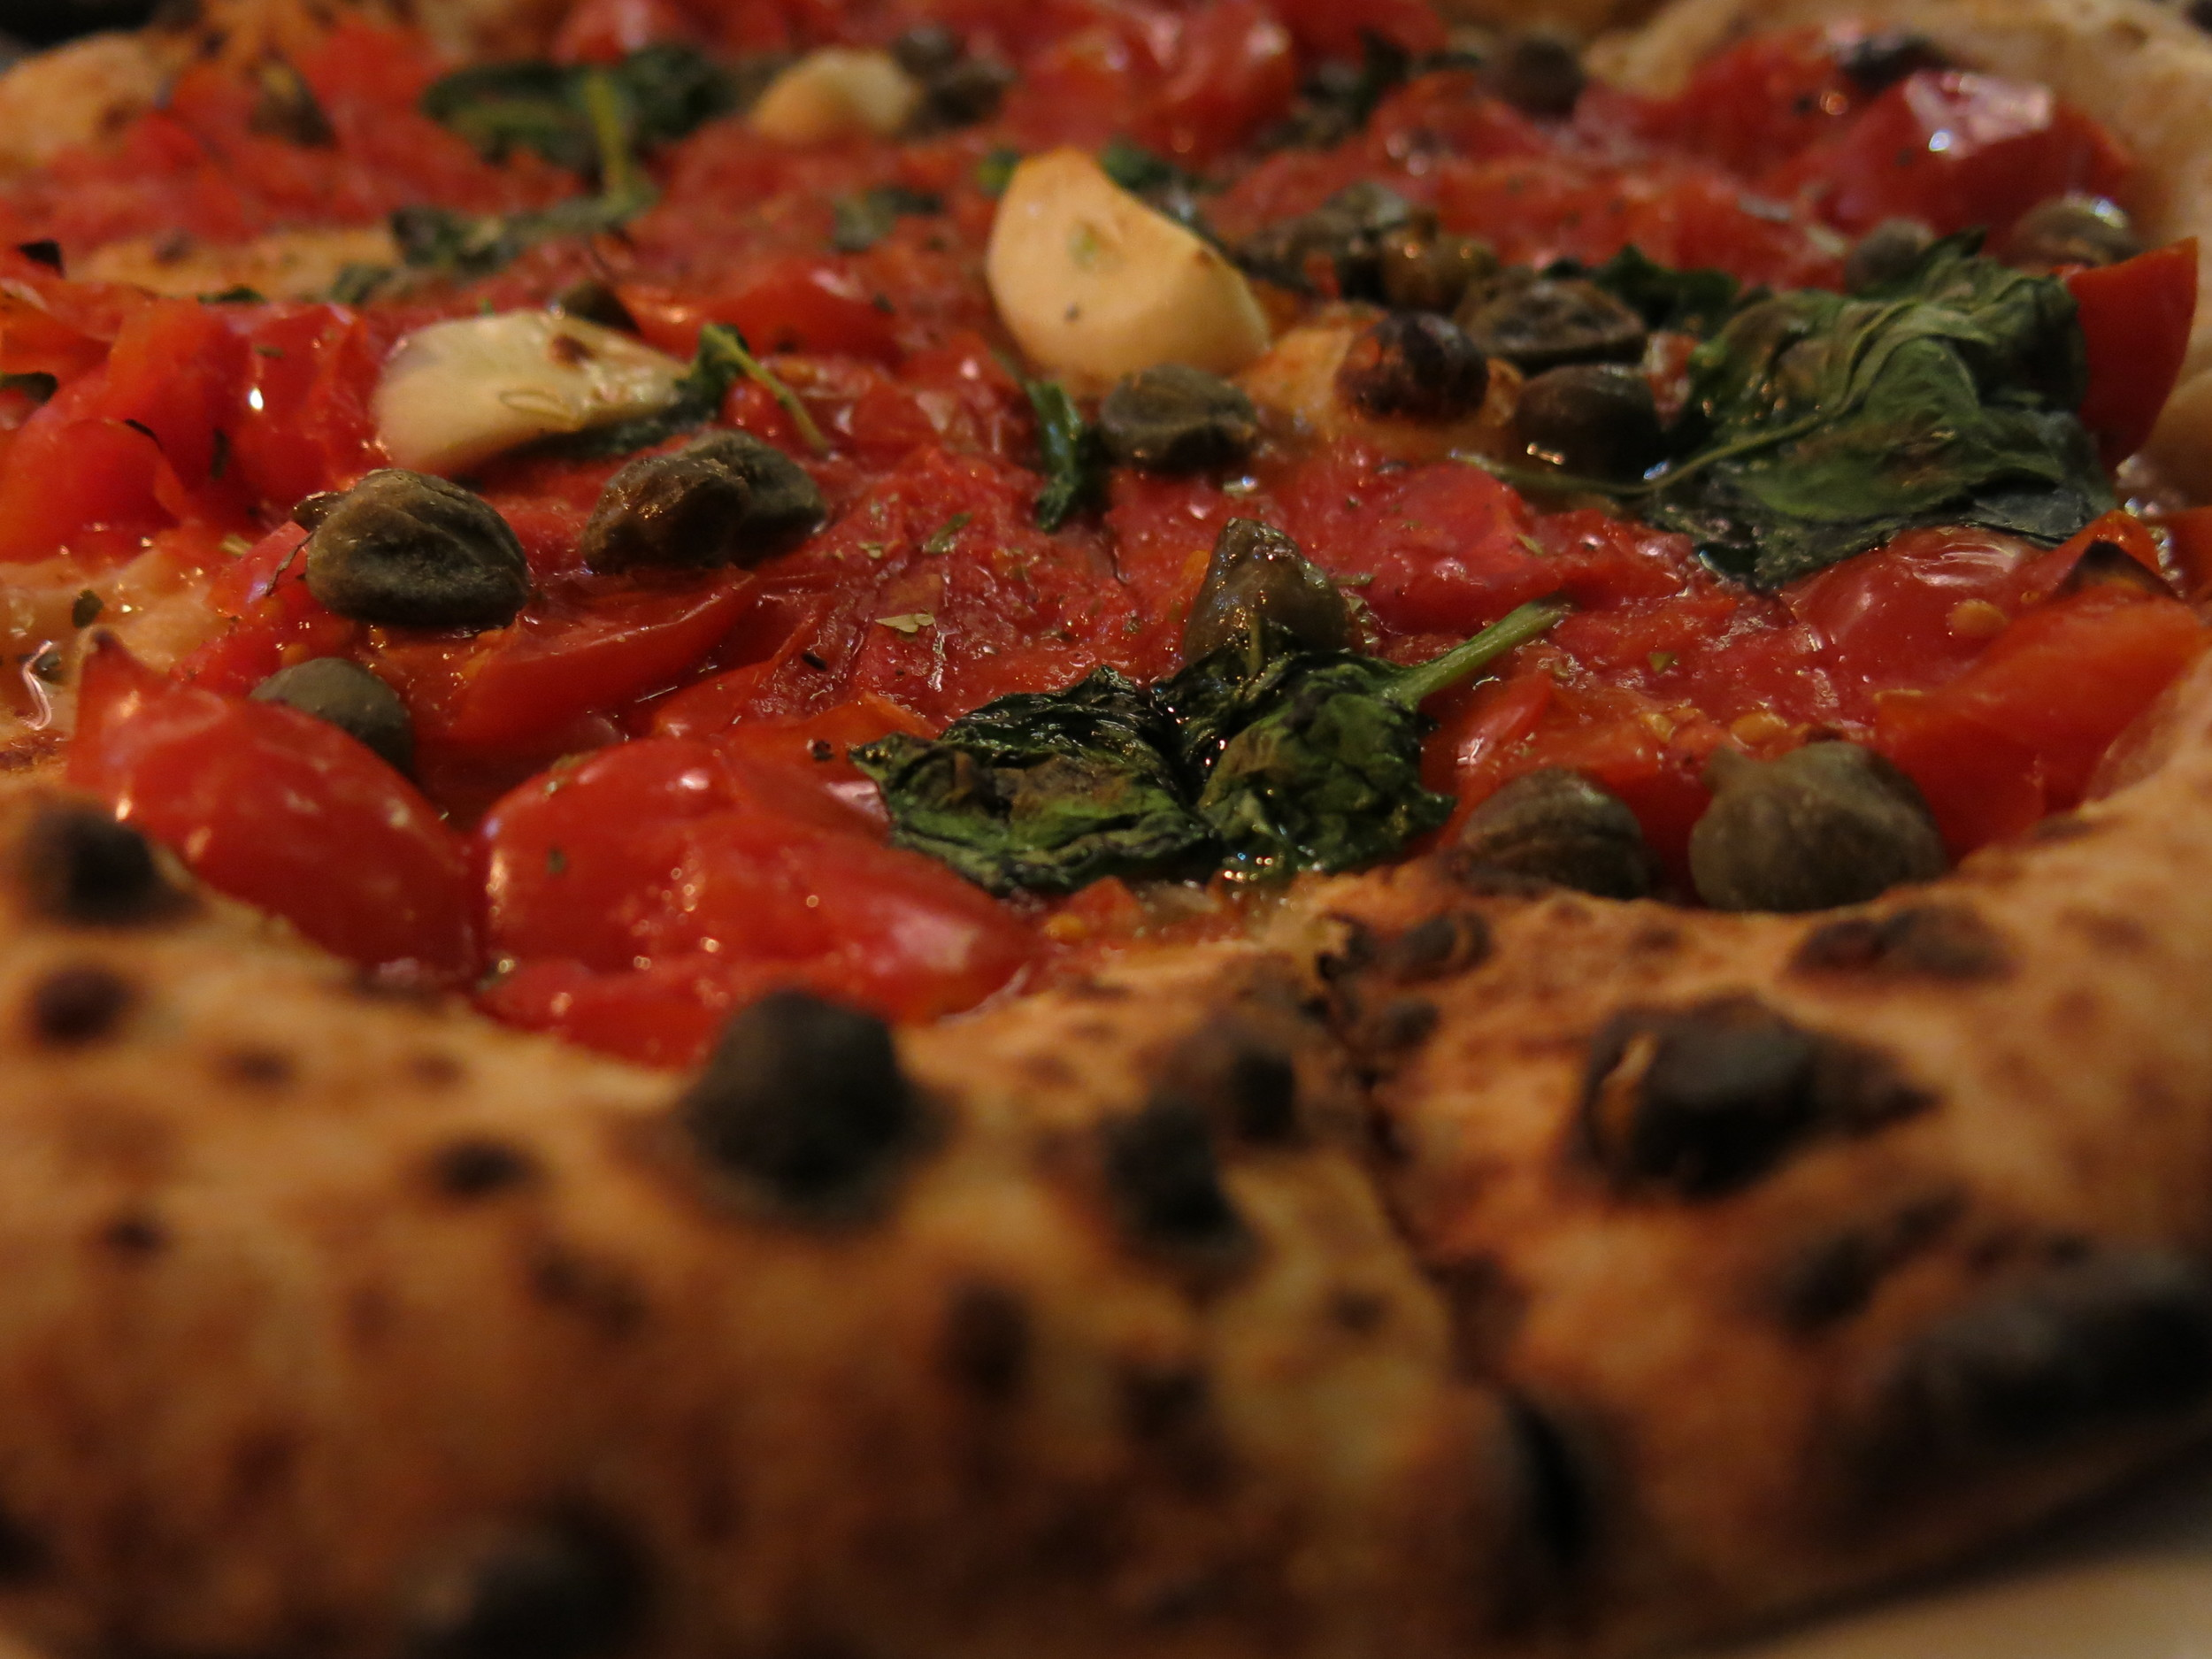 31a-hache-marinara-with-piennolo-tomatoes-and-capers.jpg